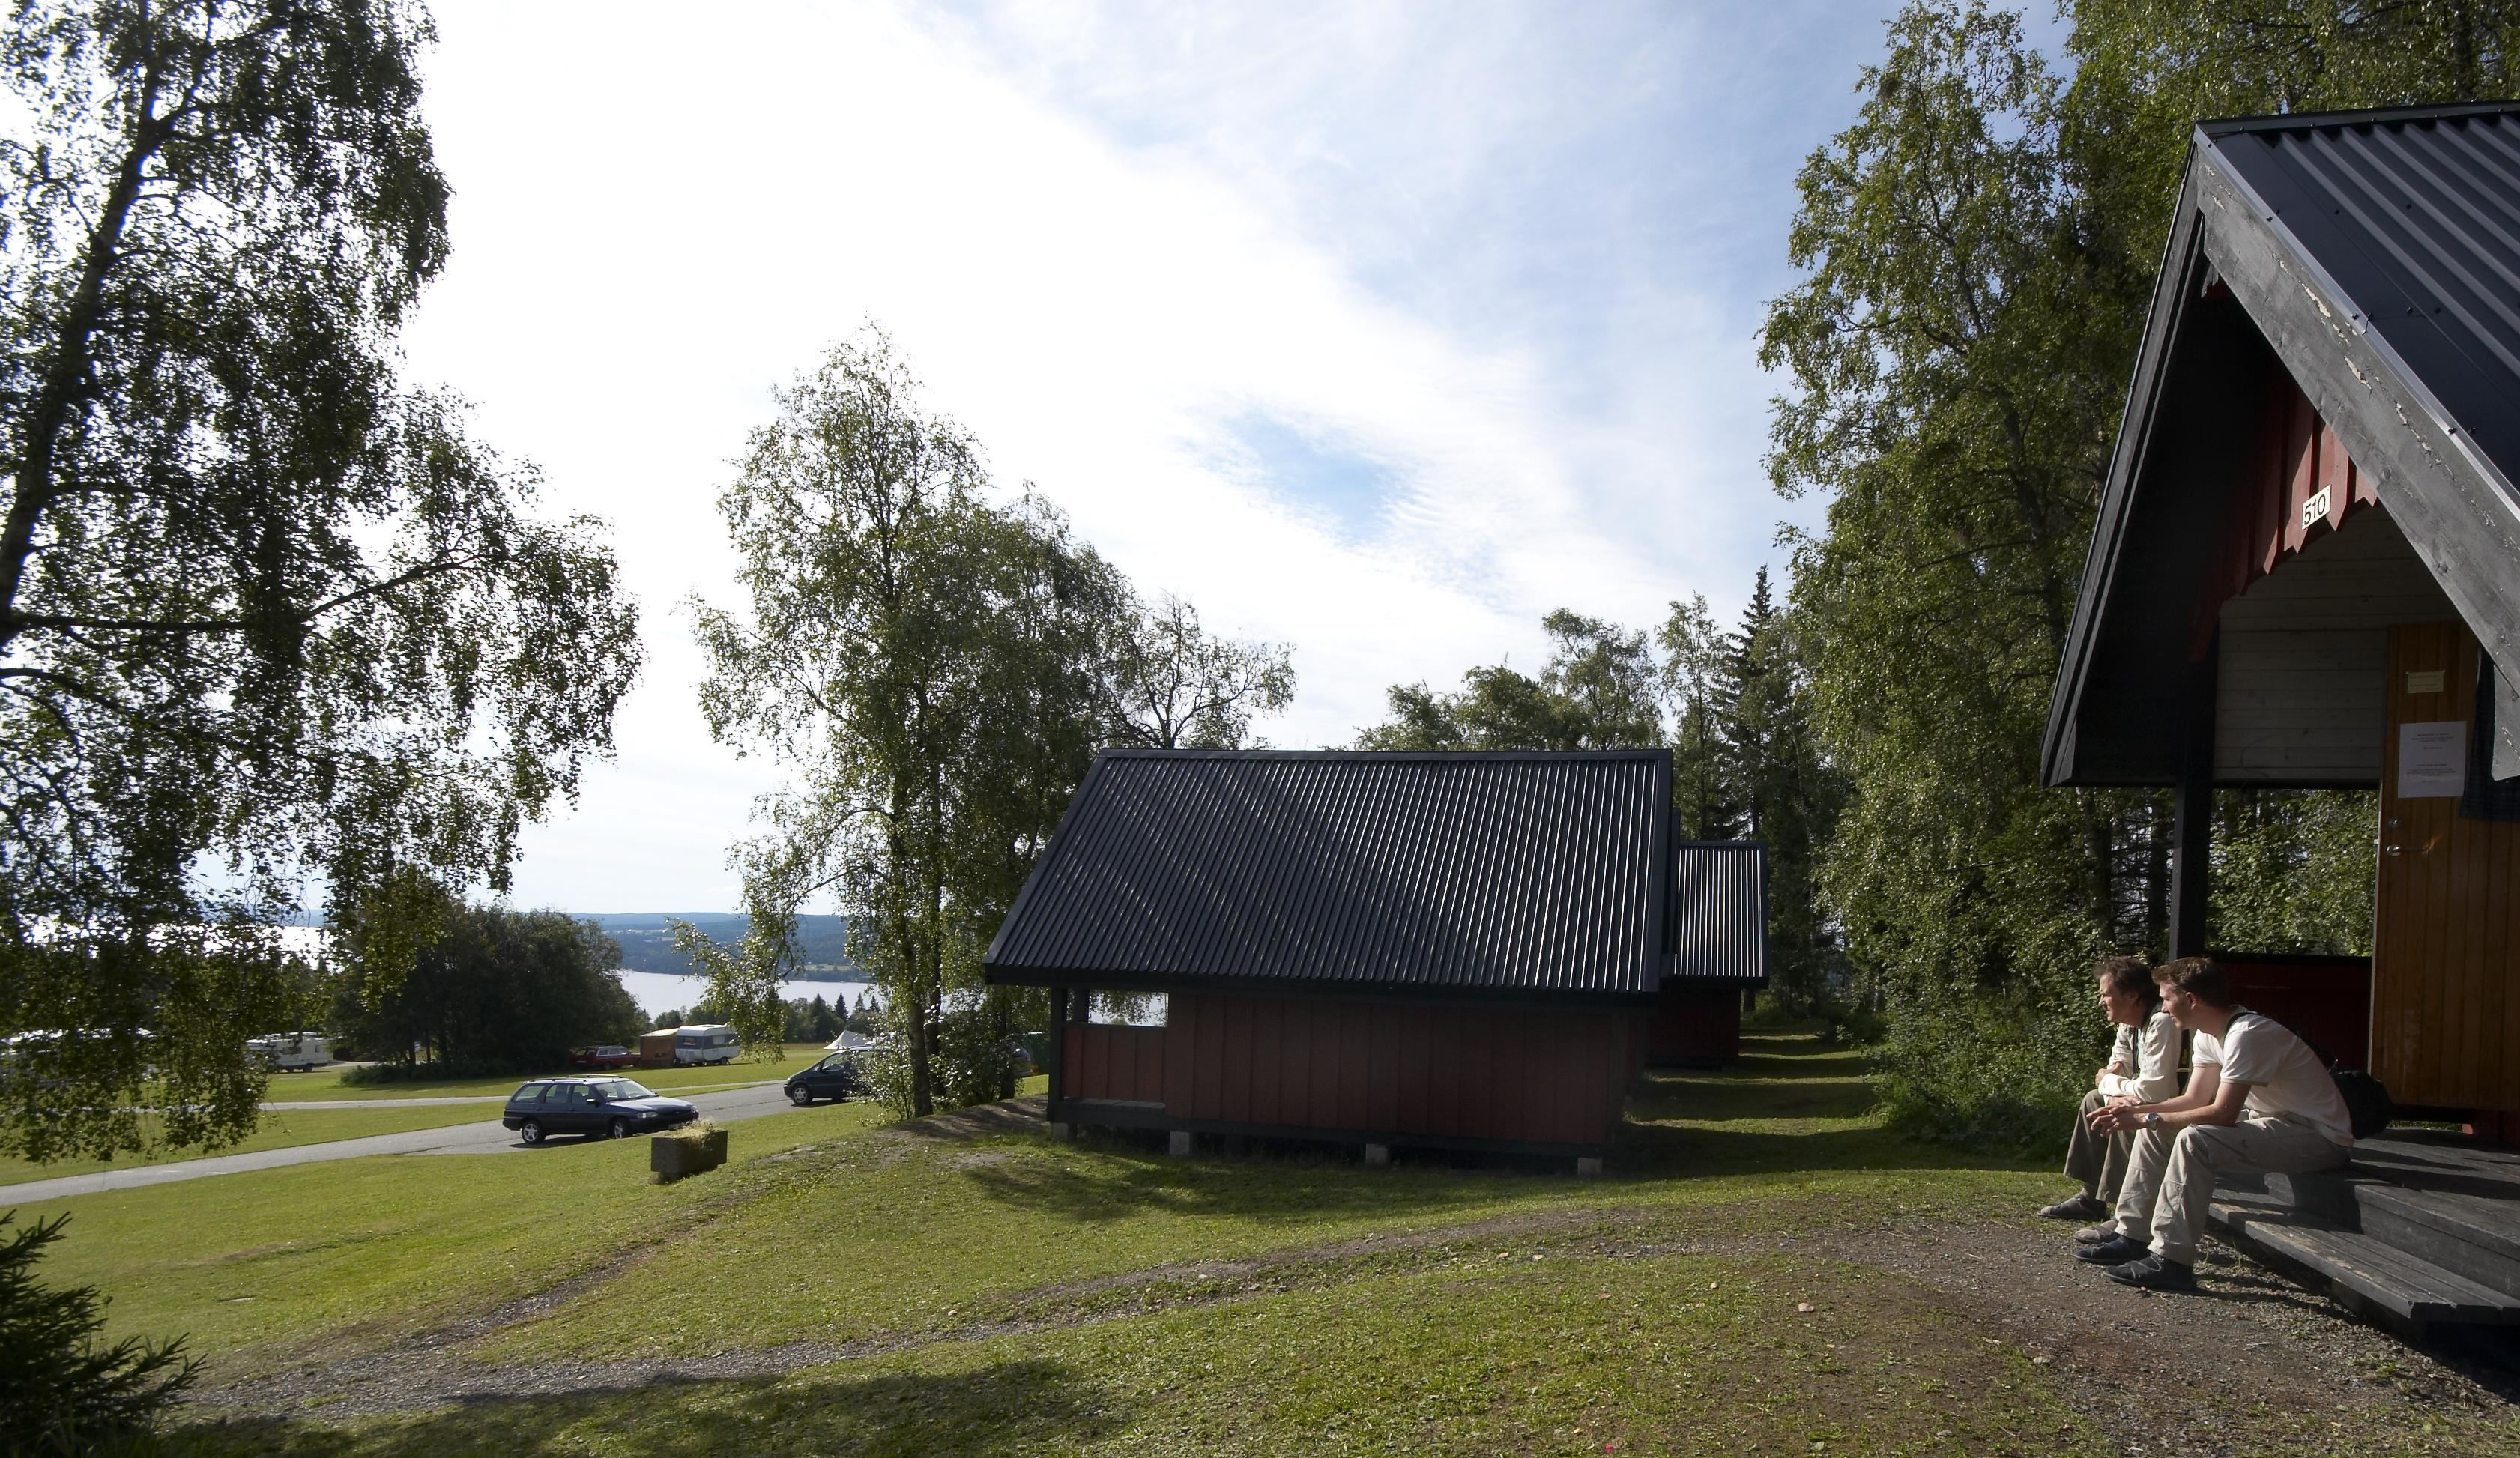 Nordic Camping Frösö/Cottages